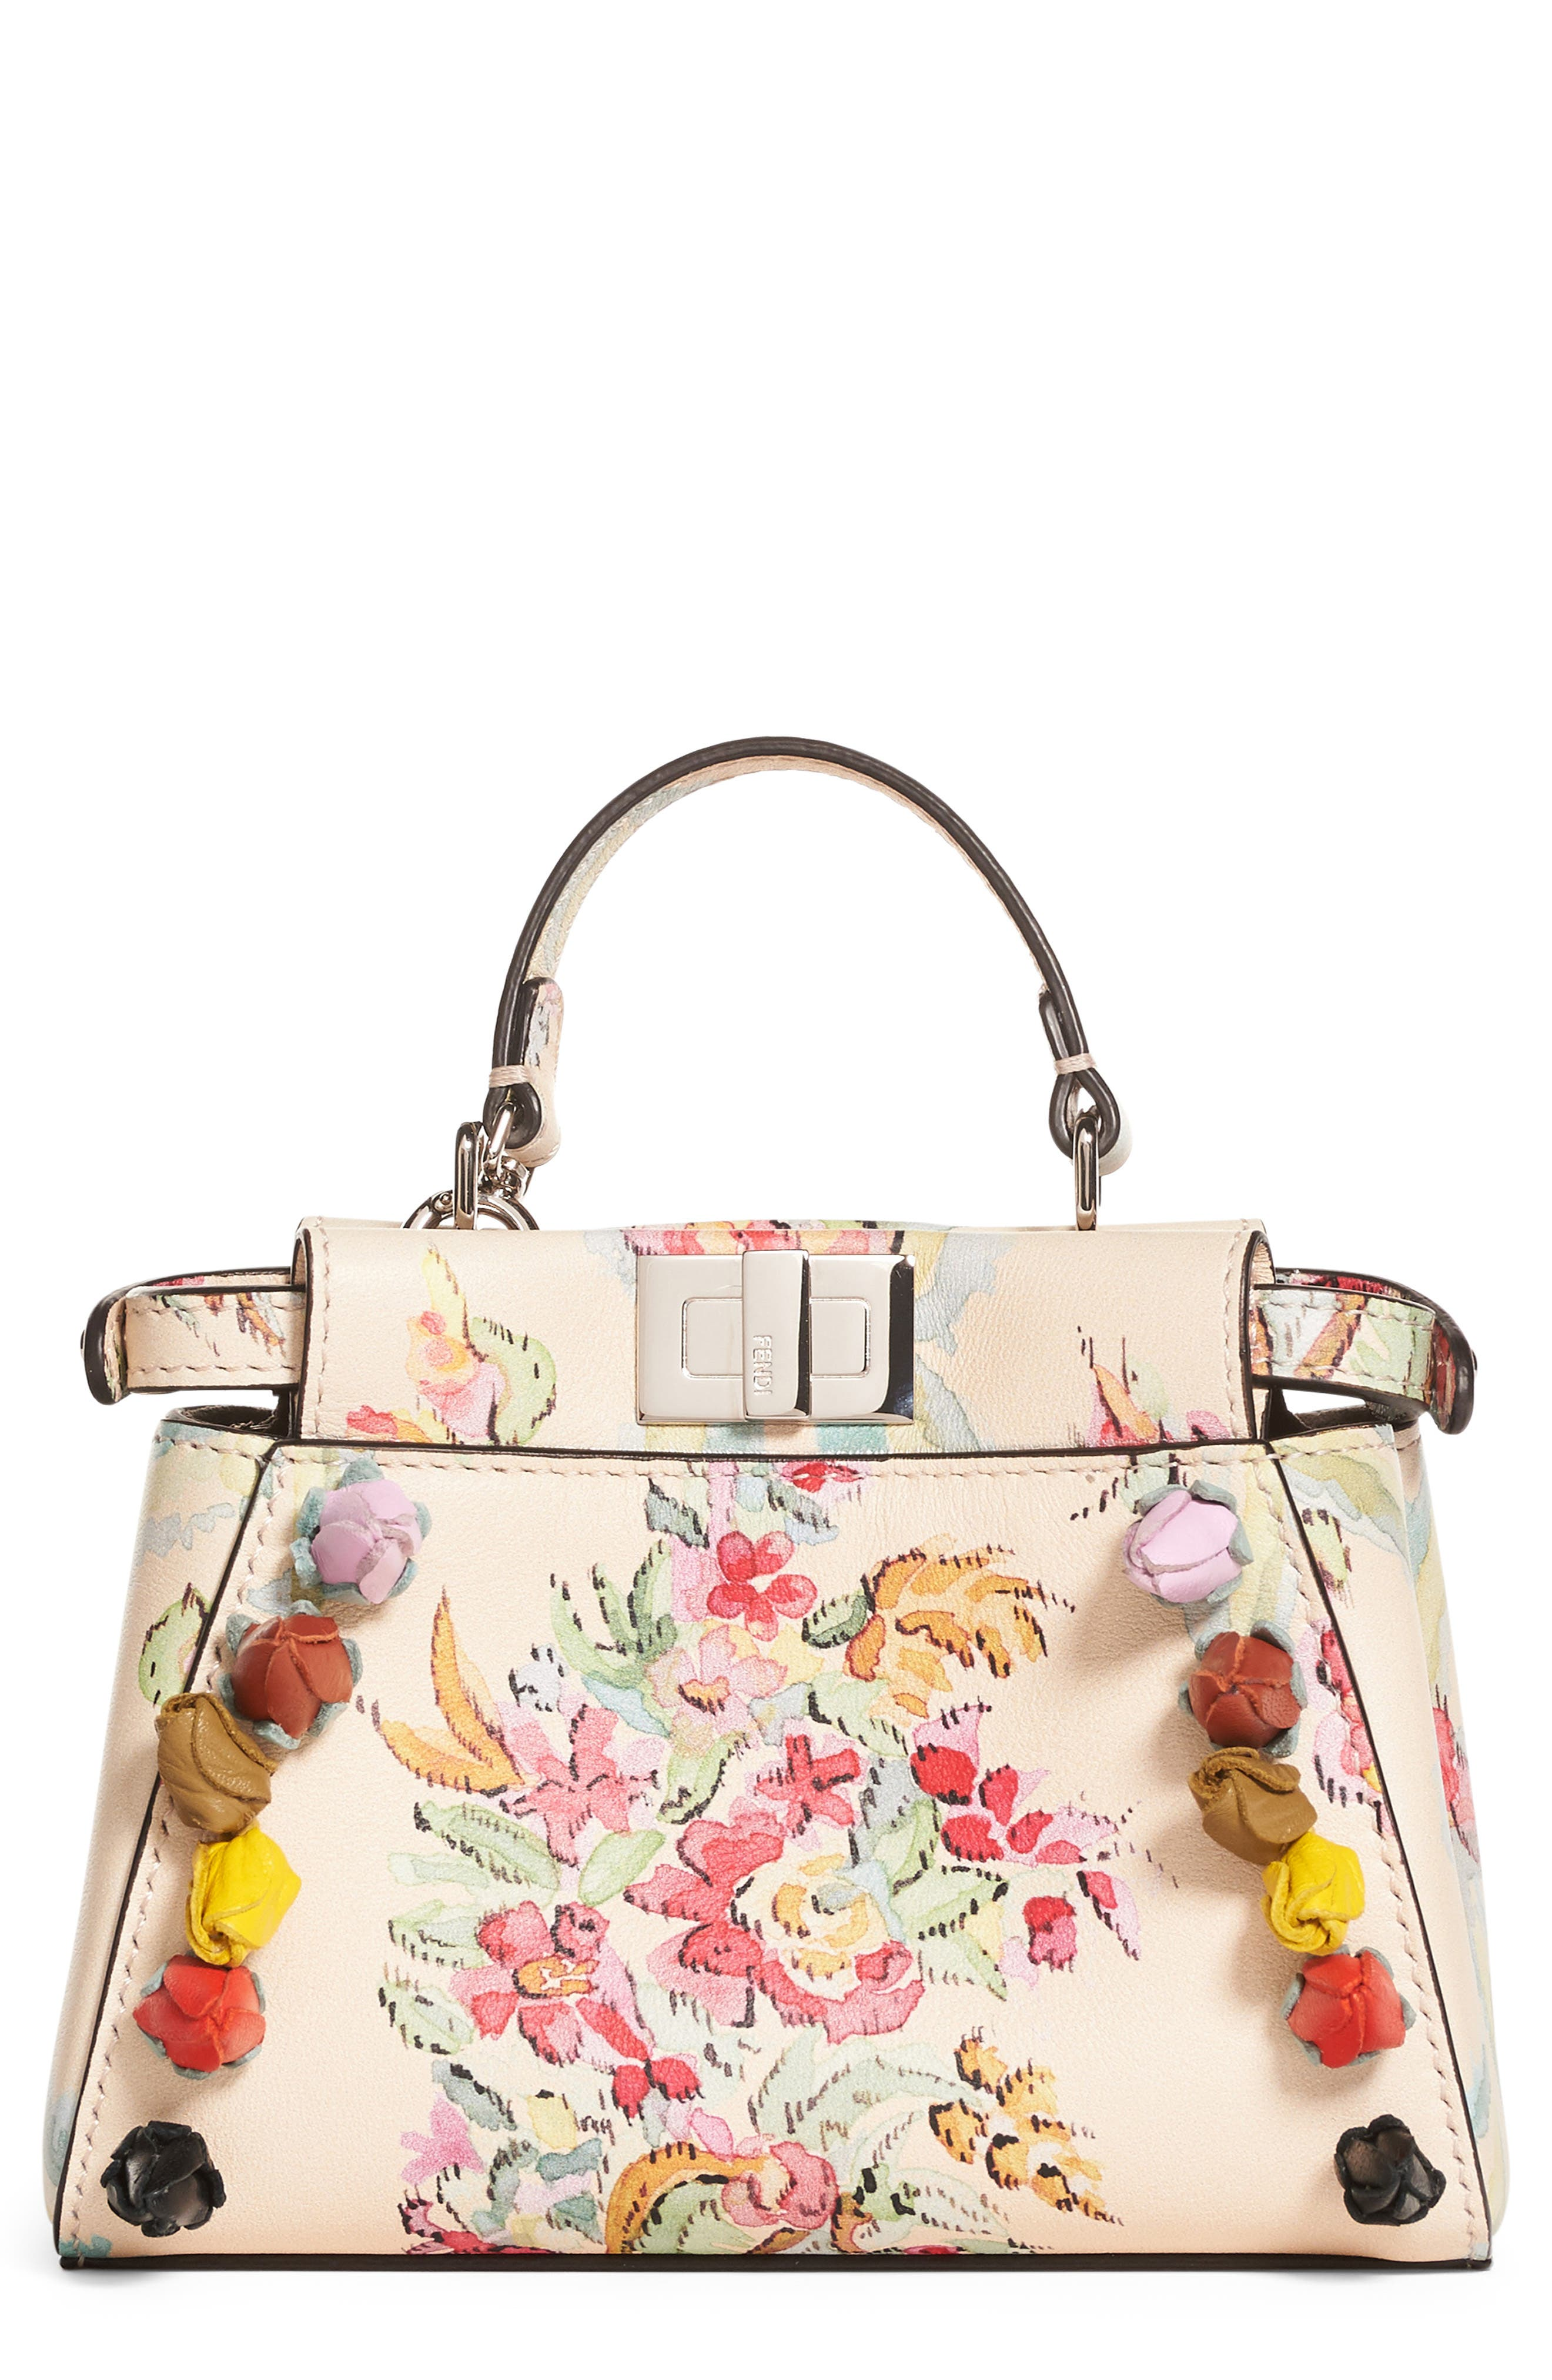 Fendi Micro Peekaboo Floral Appliqué Leather Satchel